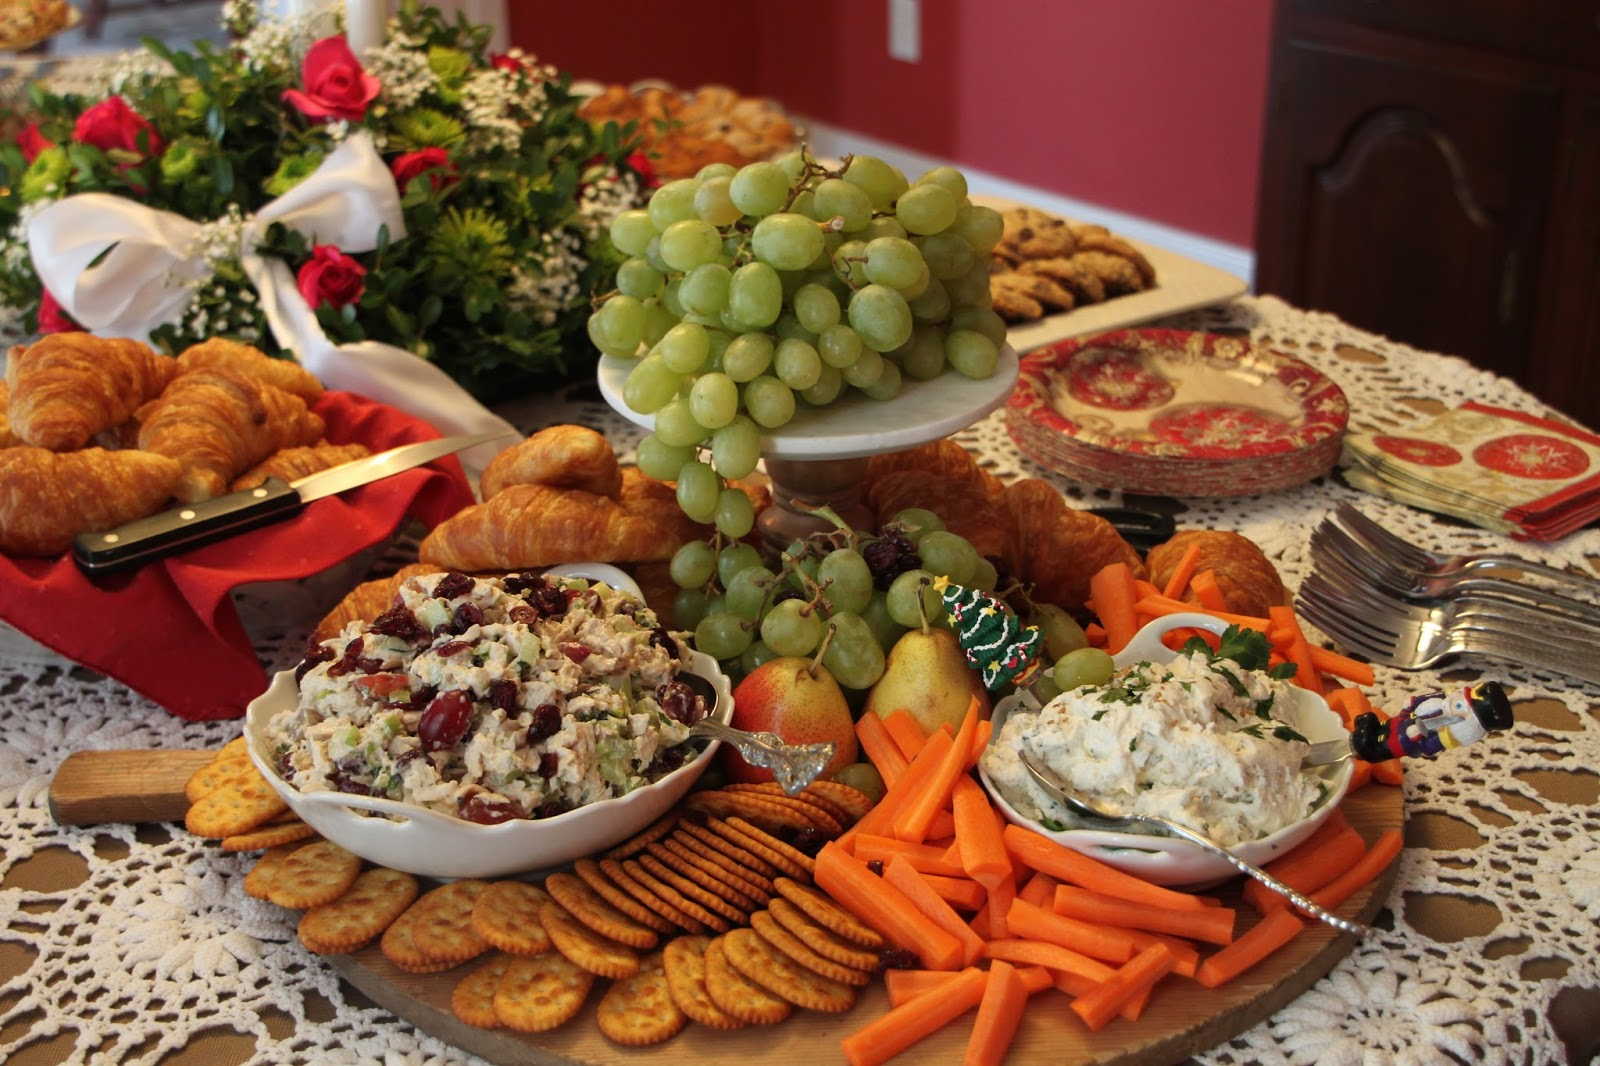 Join Me Today For Some Great Holiday Entertaining Ideas Im Part Of A Talented Group Ladies In Garden Club Who Know How To Entertain